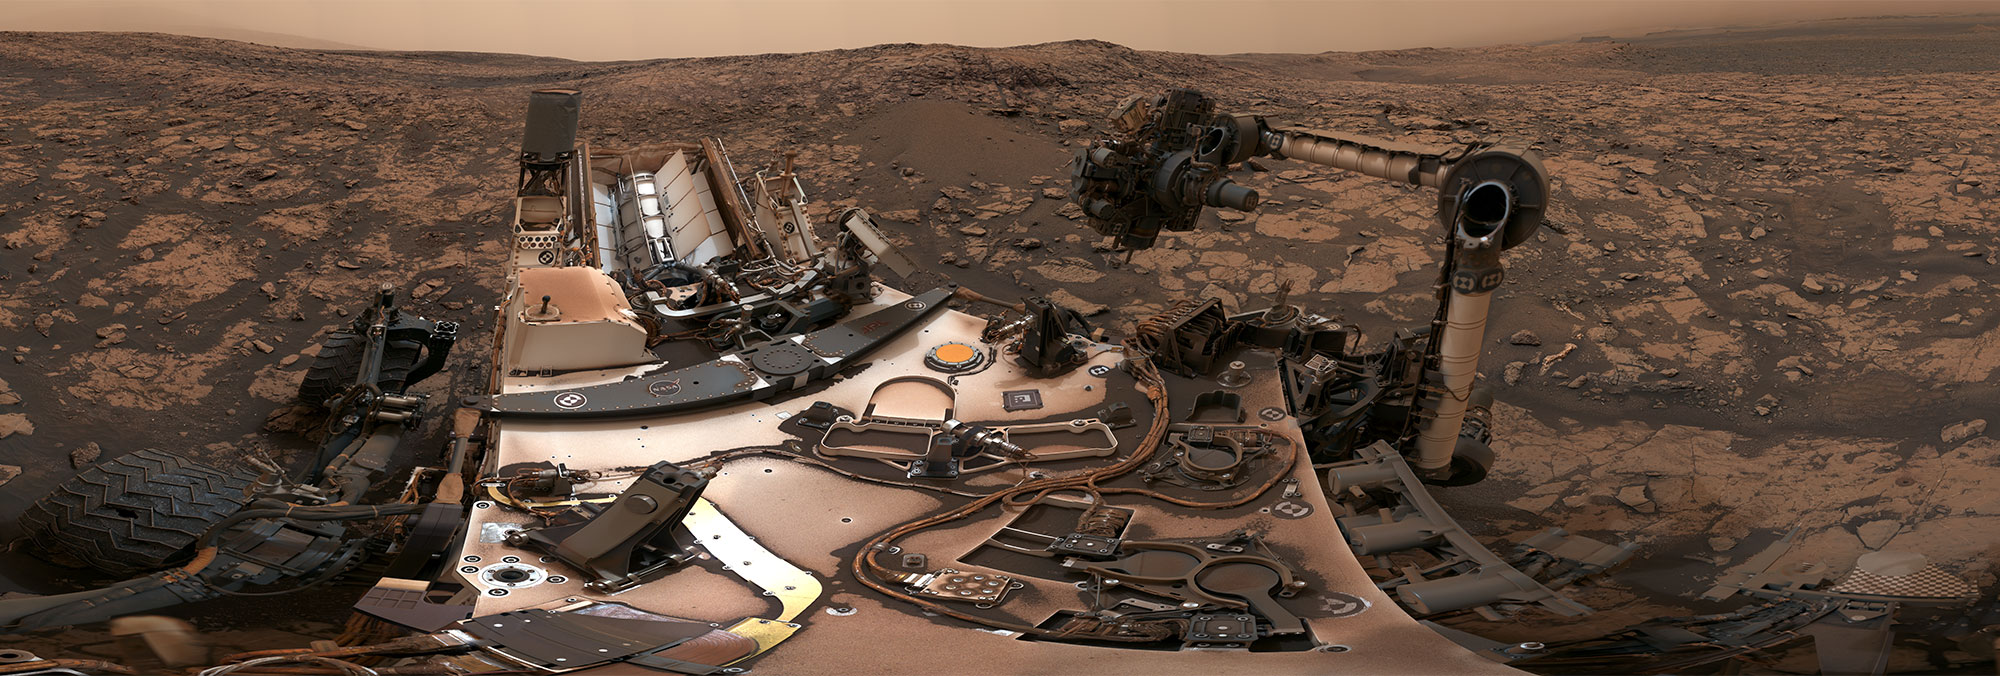 The 360º panorama captured by the Curiosity rover after drilling at Vera Rubin Ridge.